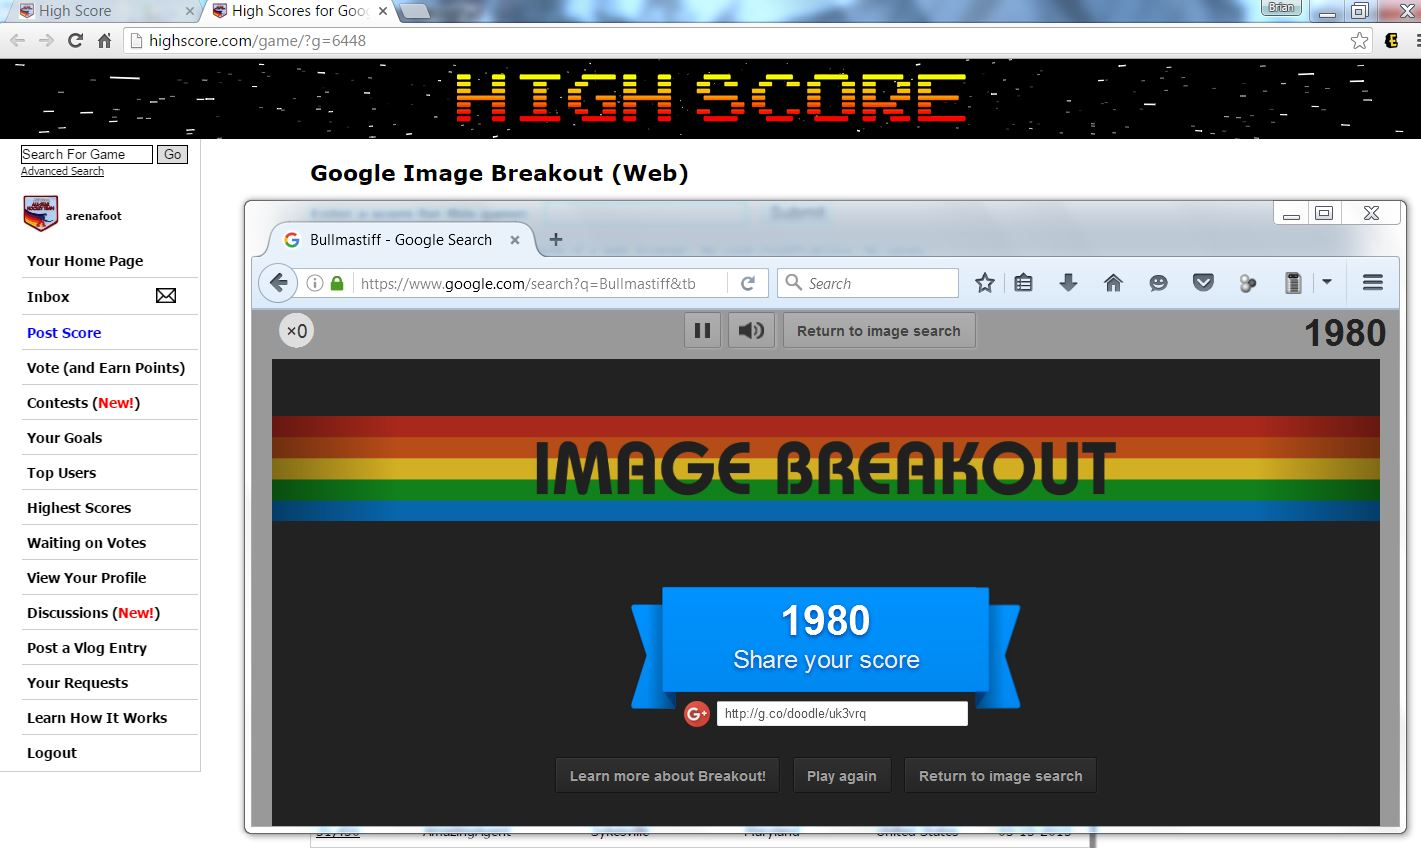 arenafoot: Google Image Breakout (Web) 1,980 points on 2016-06-14 23:12:46